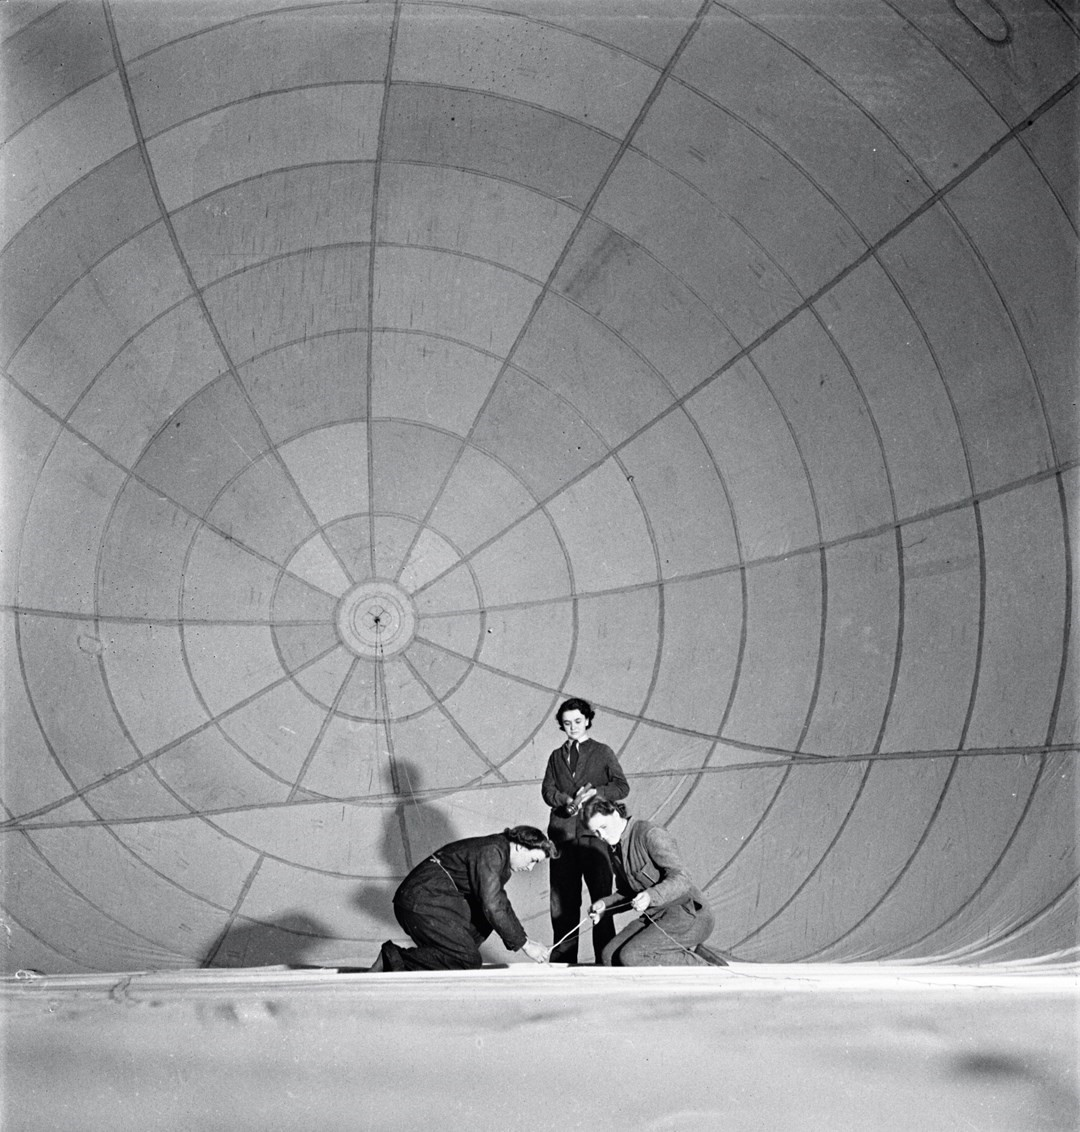 Women Working on the Barrage Balloon, 1941, by Cecil Beaton